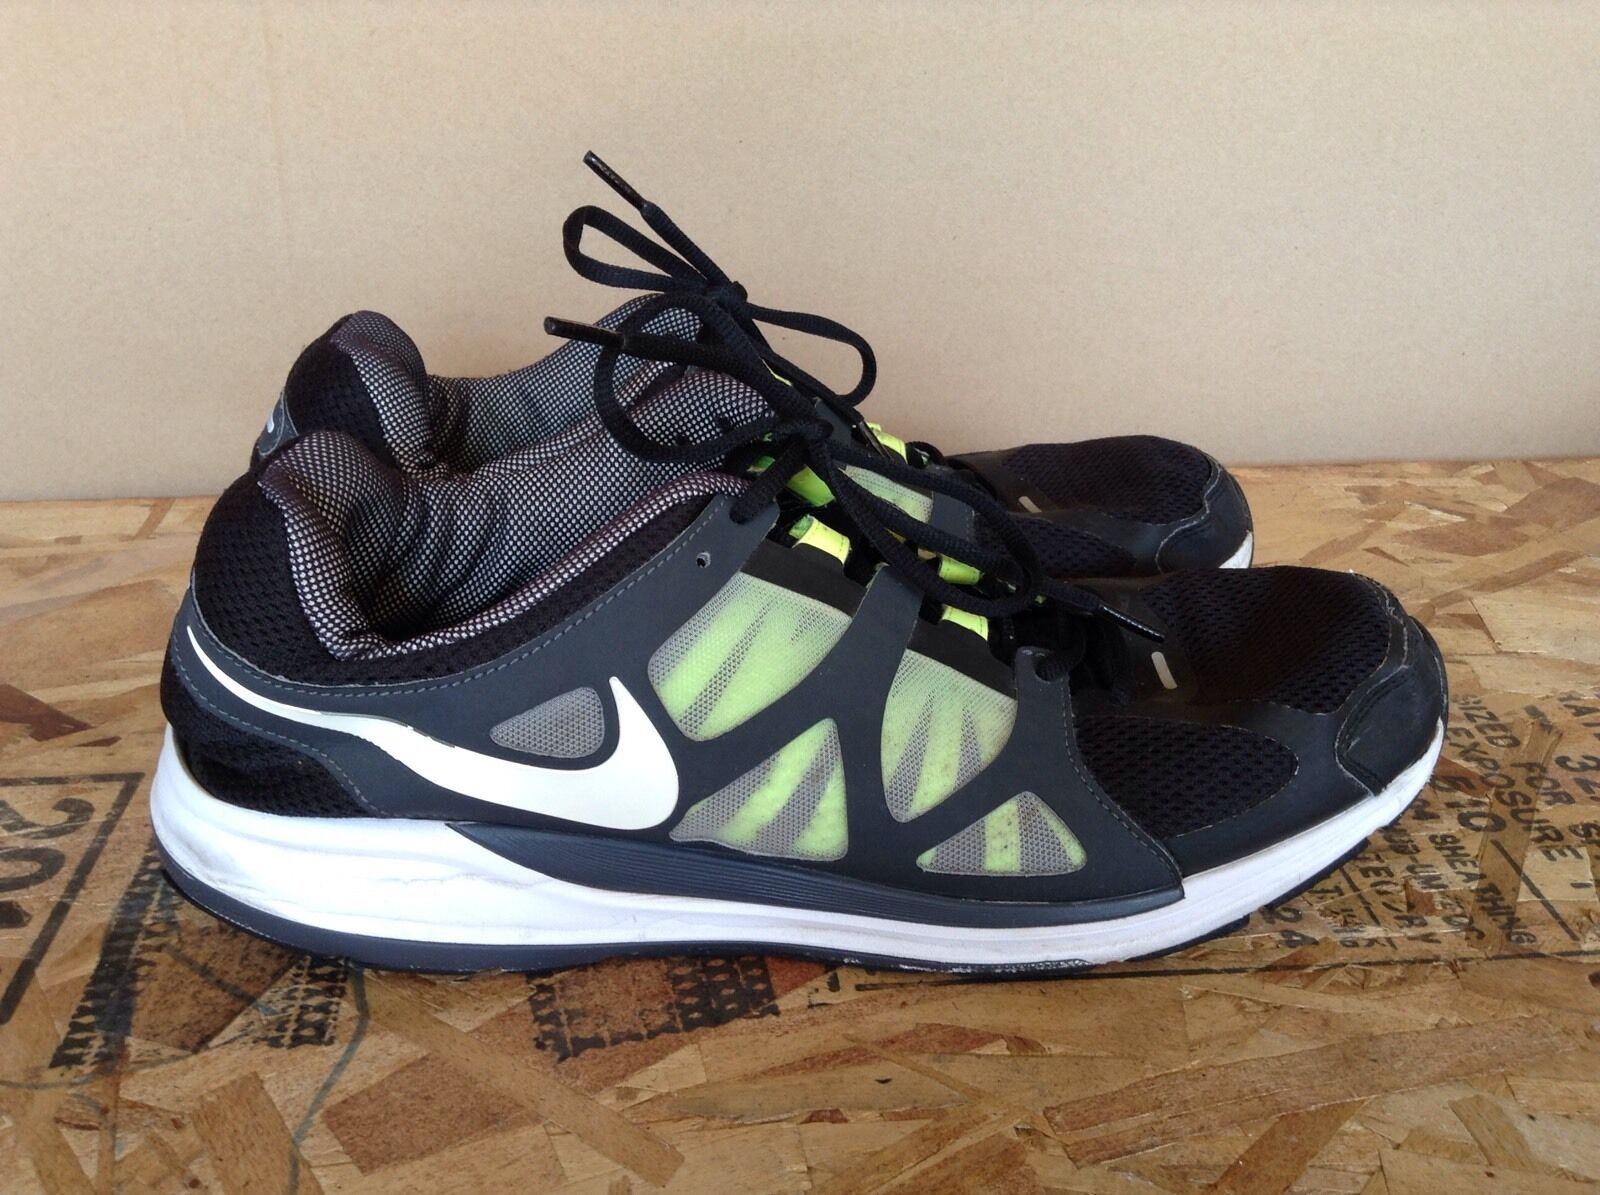 Nike Zoom Elite+ Shoes Men's Comfortable Comfortable and good-looking